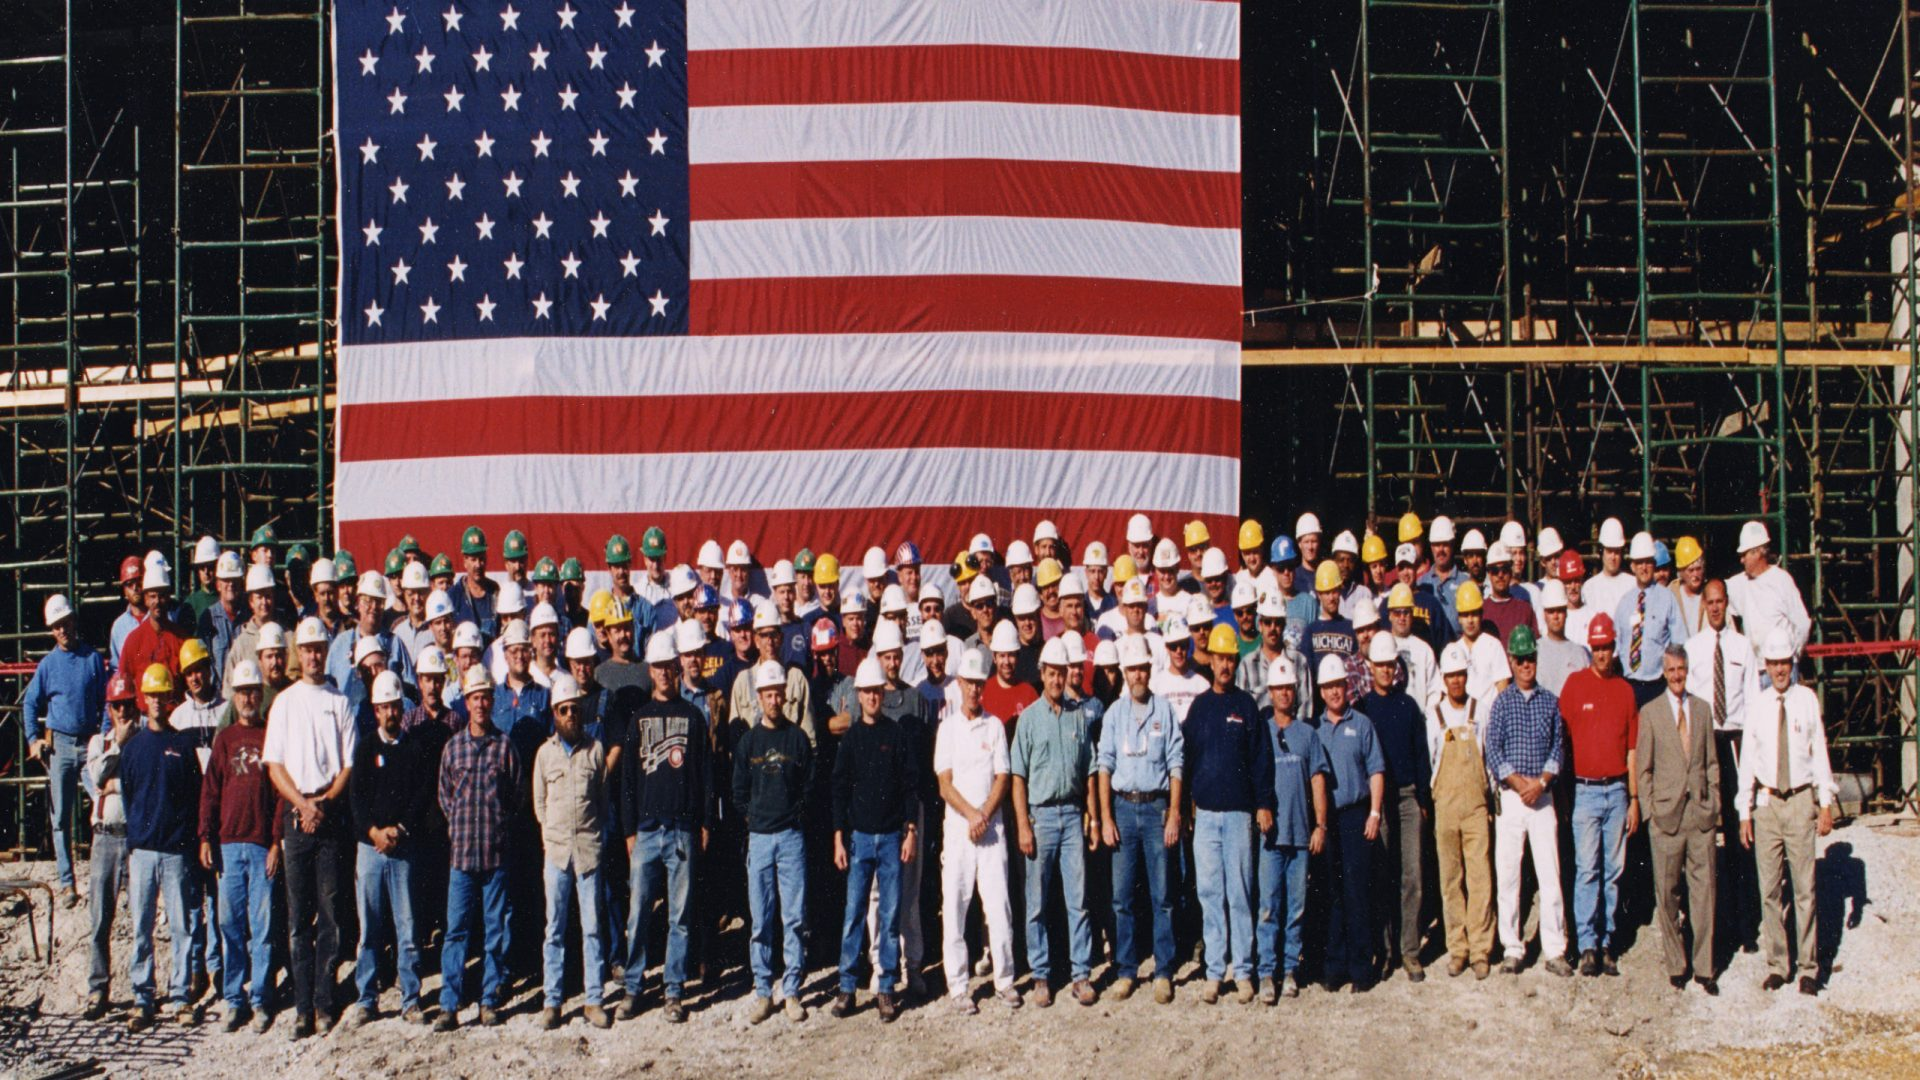 construction workers in hard hats gathered around an American flag at the Genesis East construction site